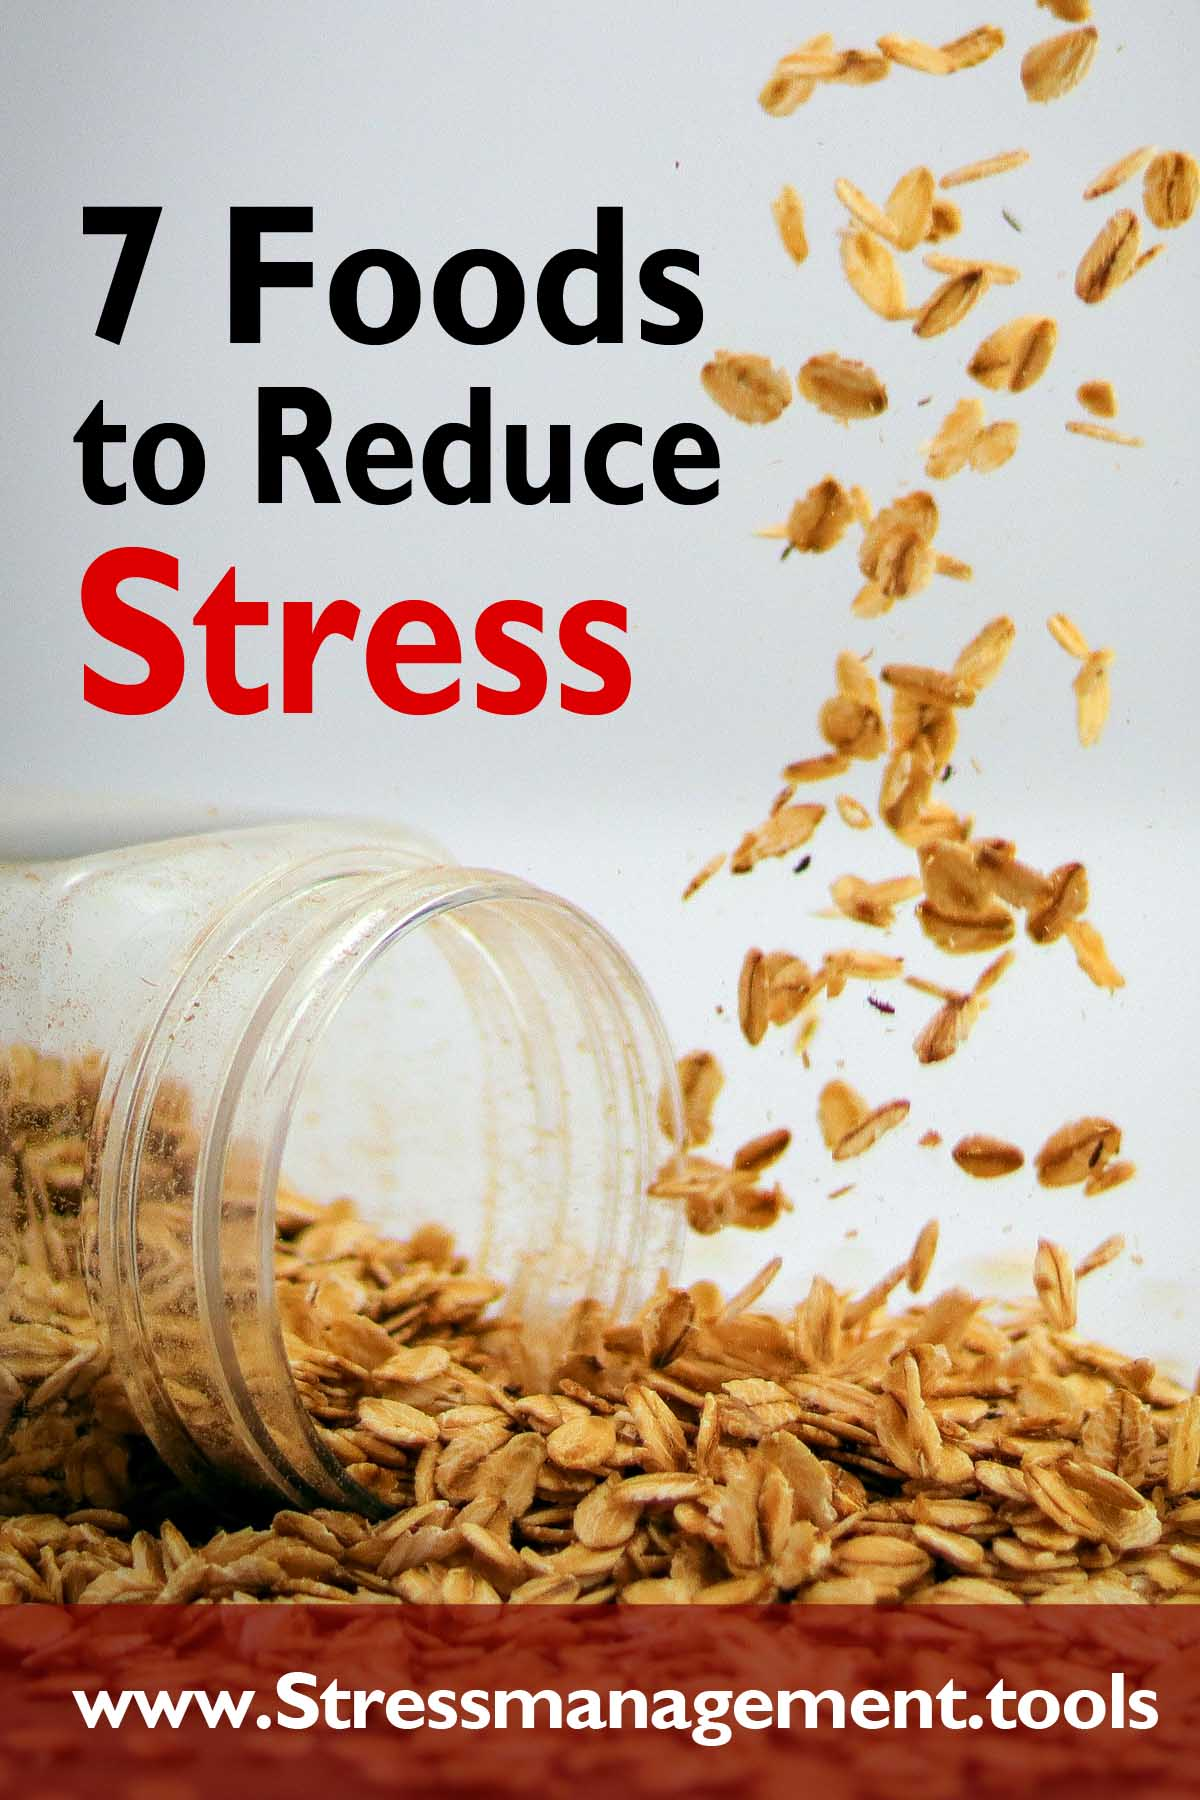 Seven Foods to Reduce Stress